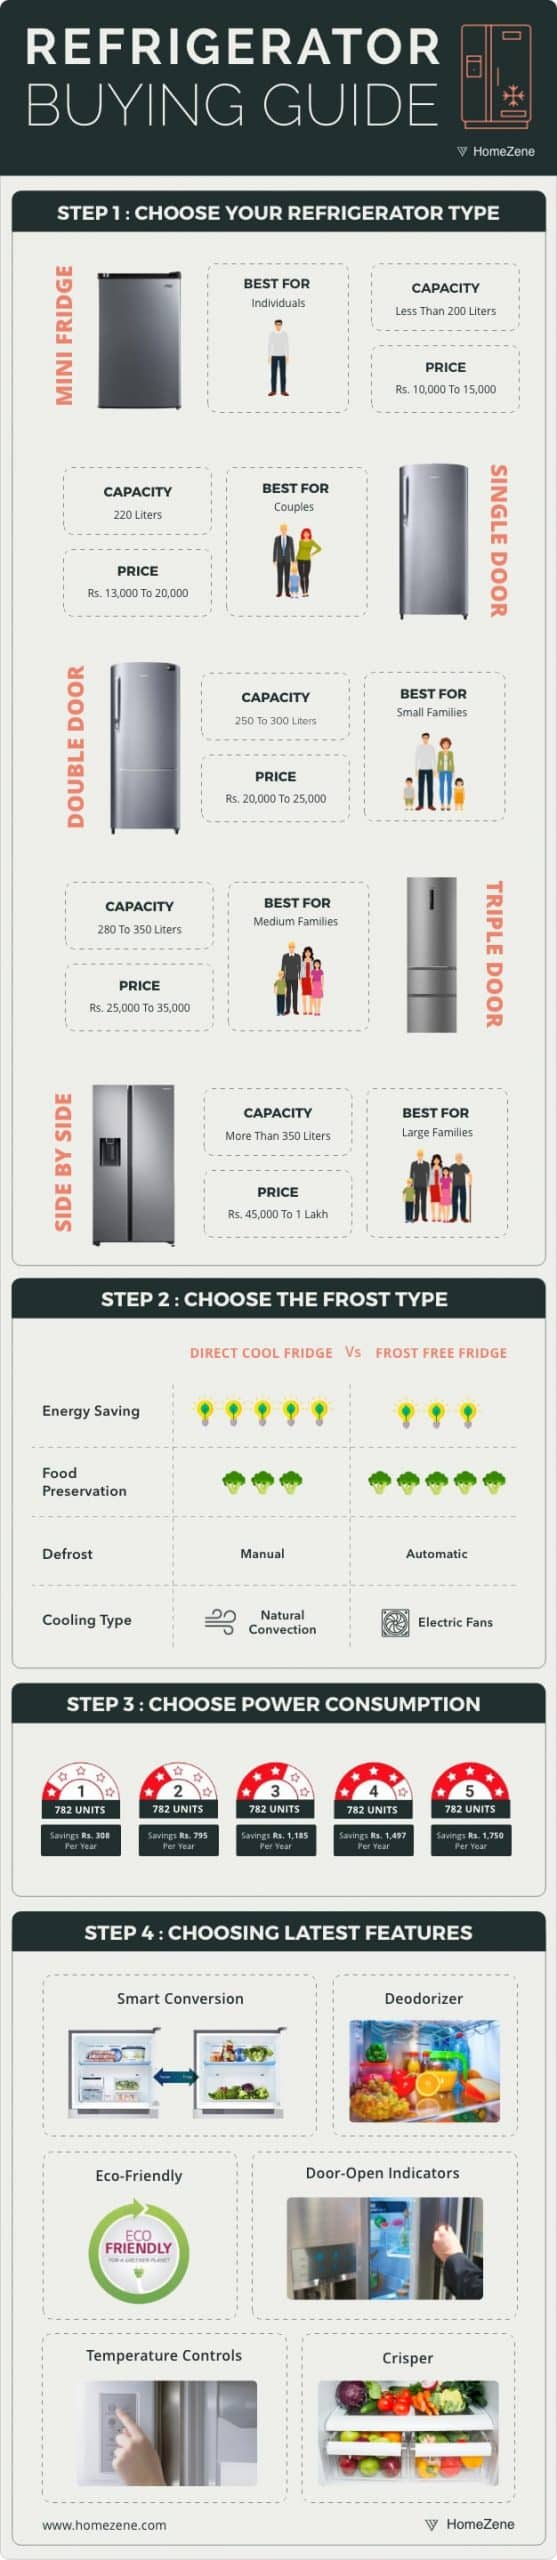 Refrigertor Buying Guide Infographic